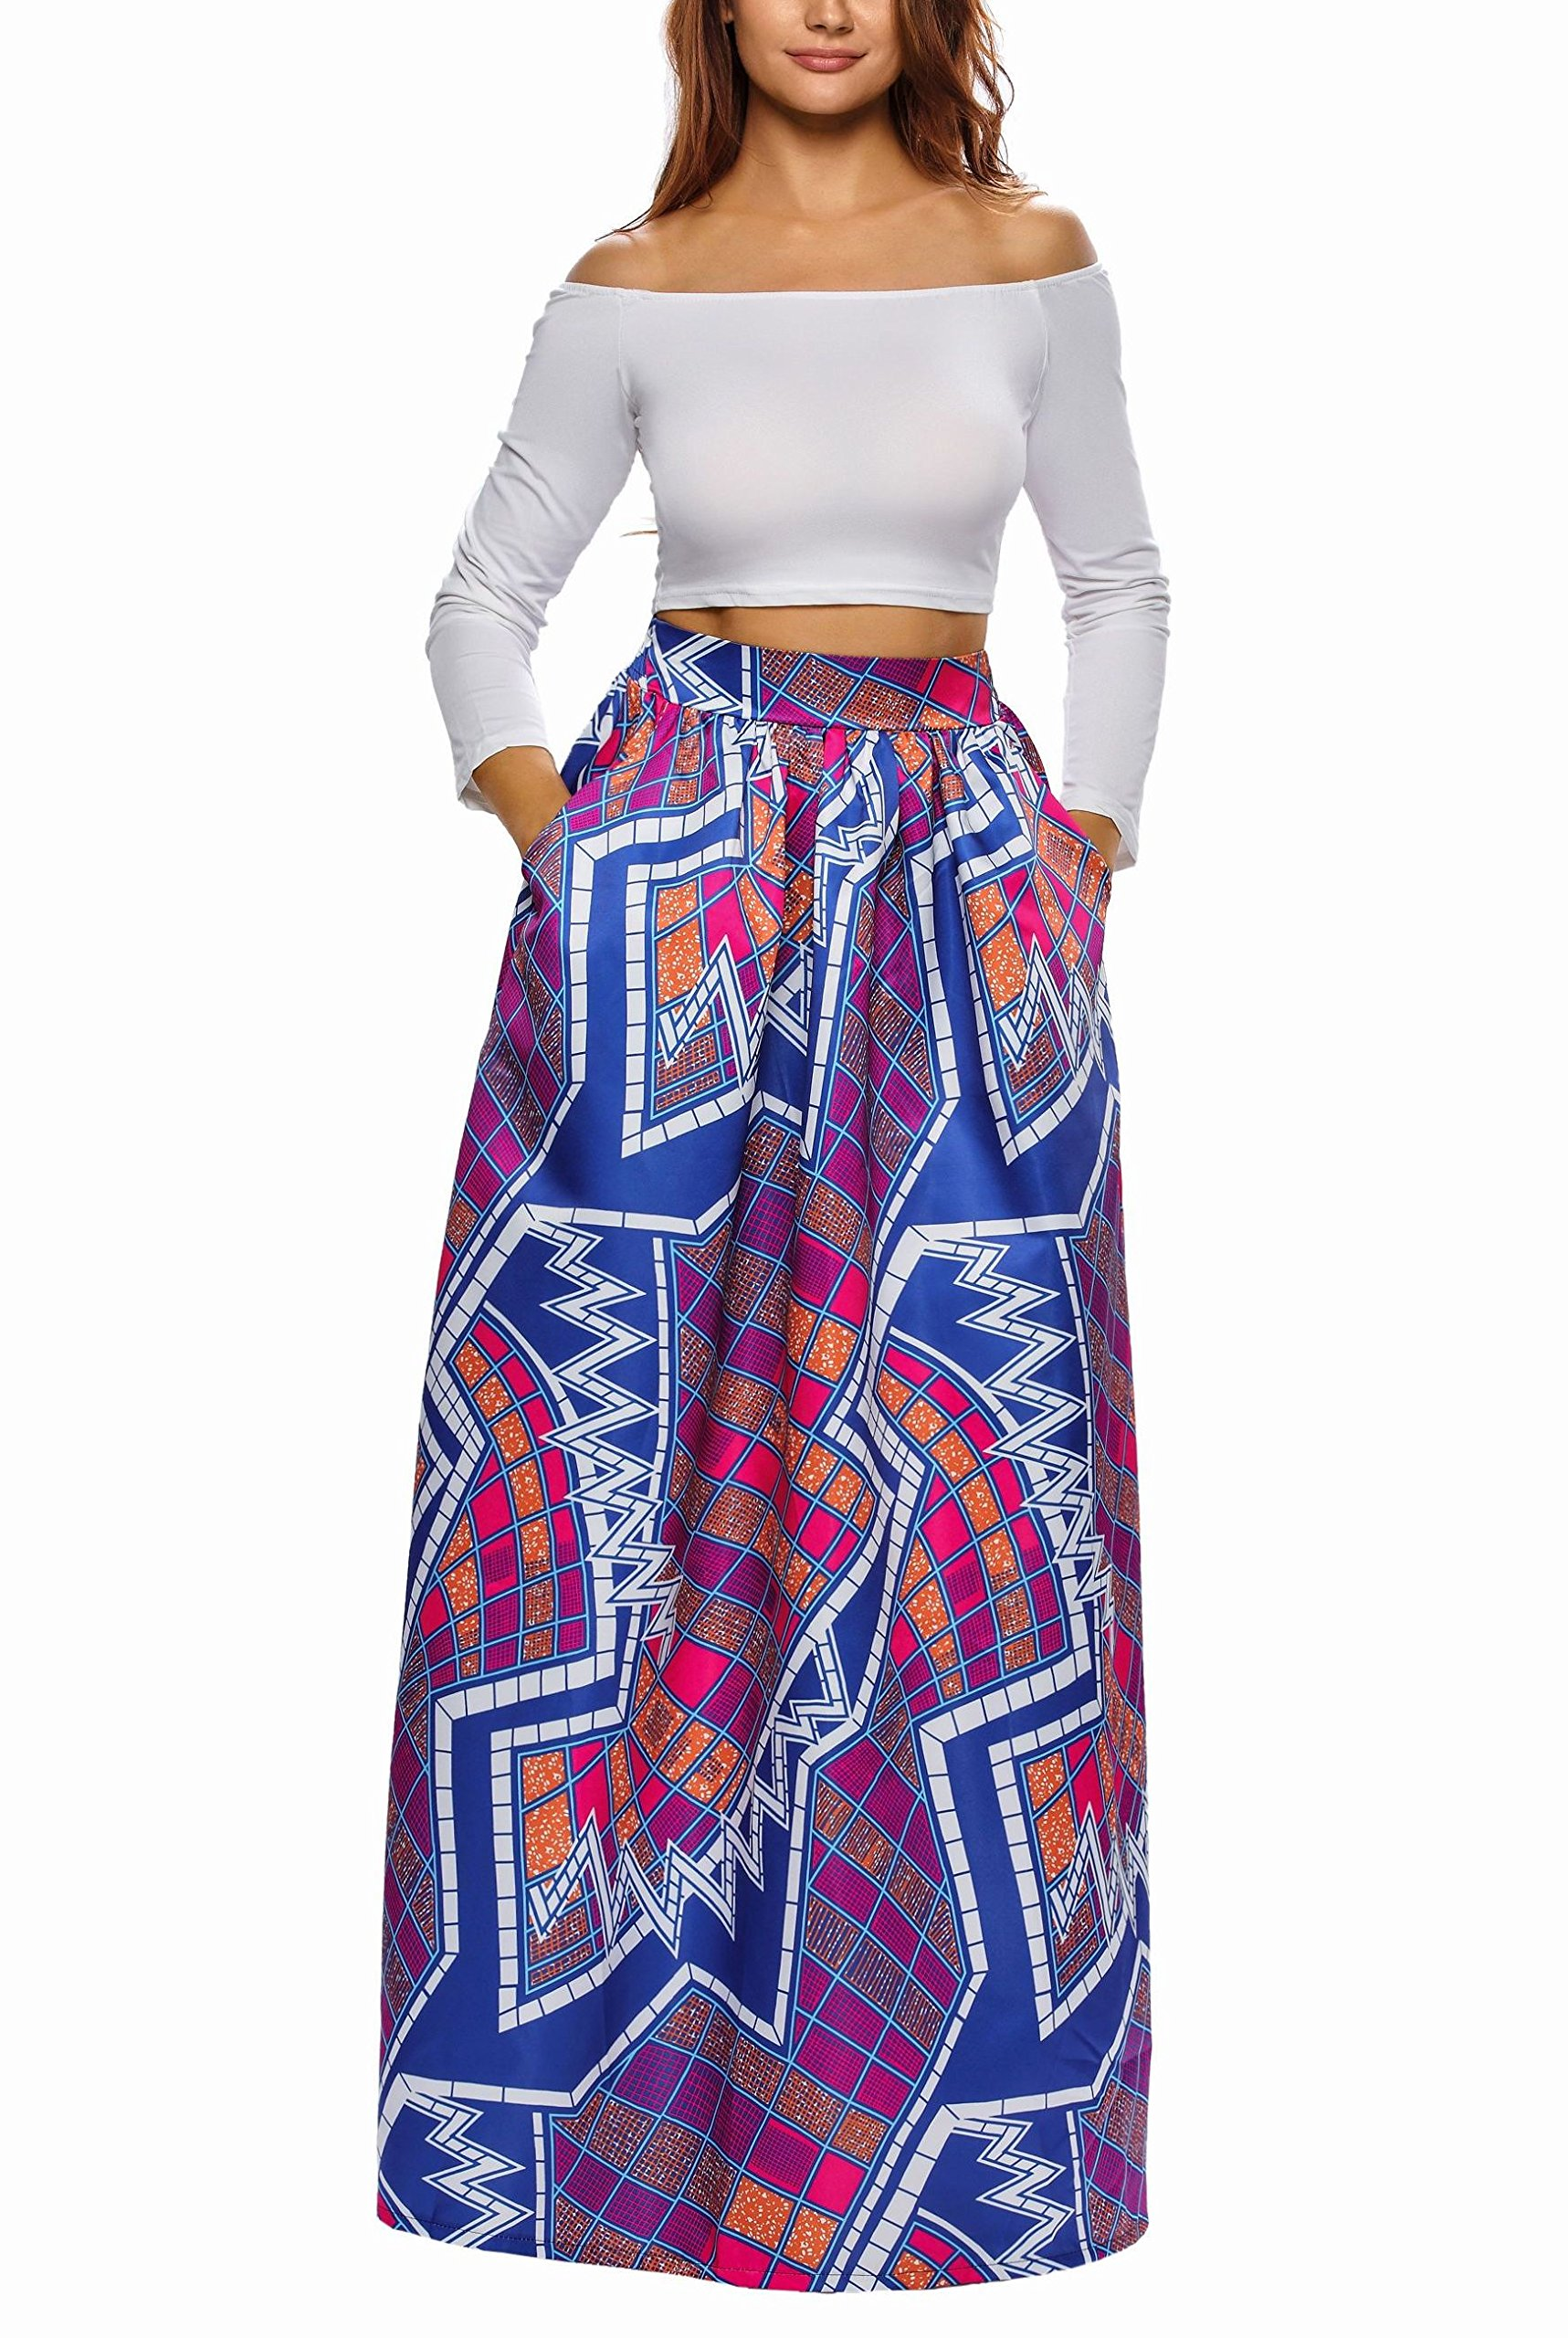 Afibi Women African Printed Casual Maxi Skirt Flared Skirt Multisize A Line Skirt (XXX-Large, Pattern 5) by Afibi